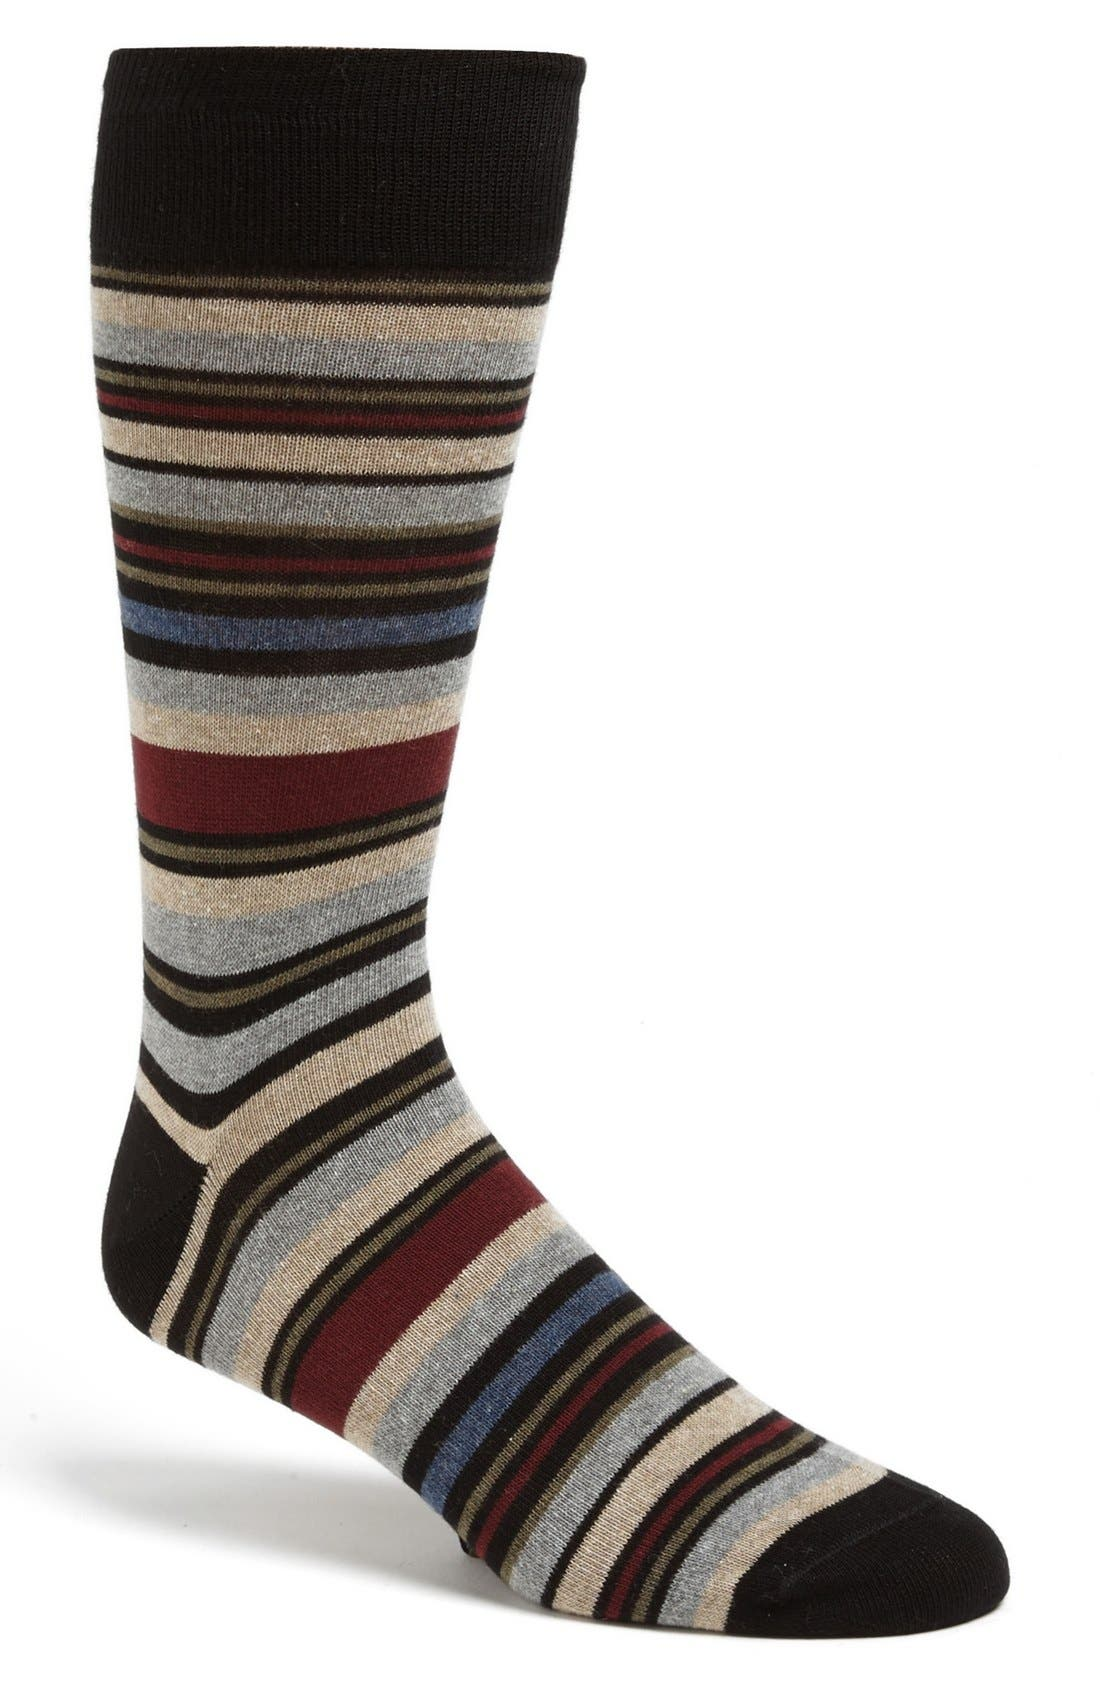 Alternate Image 1 Selected - Lorenzo Uomo Stripe Socks (3 for $30)